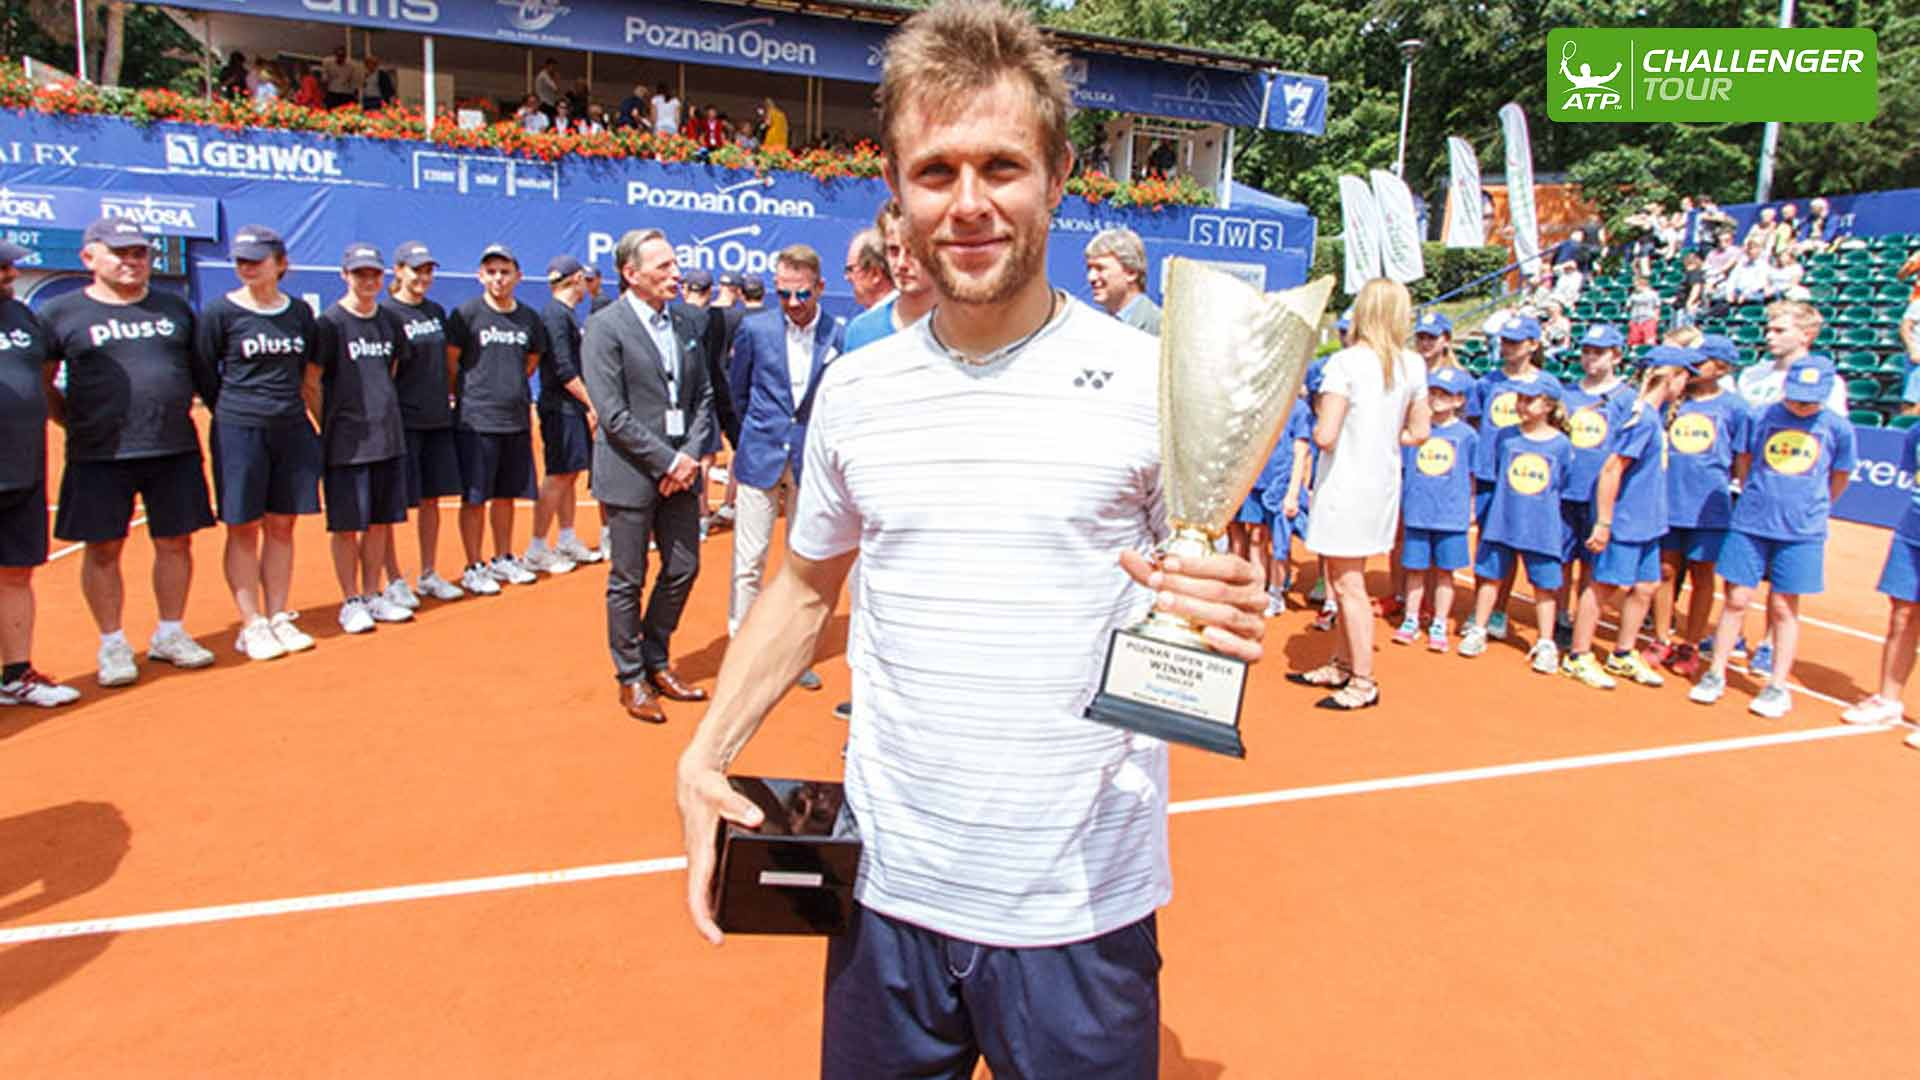 Radu Albot wins his third ATP Challenger Tour title of the year in Poznan.